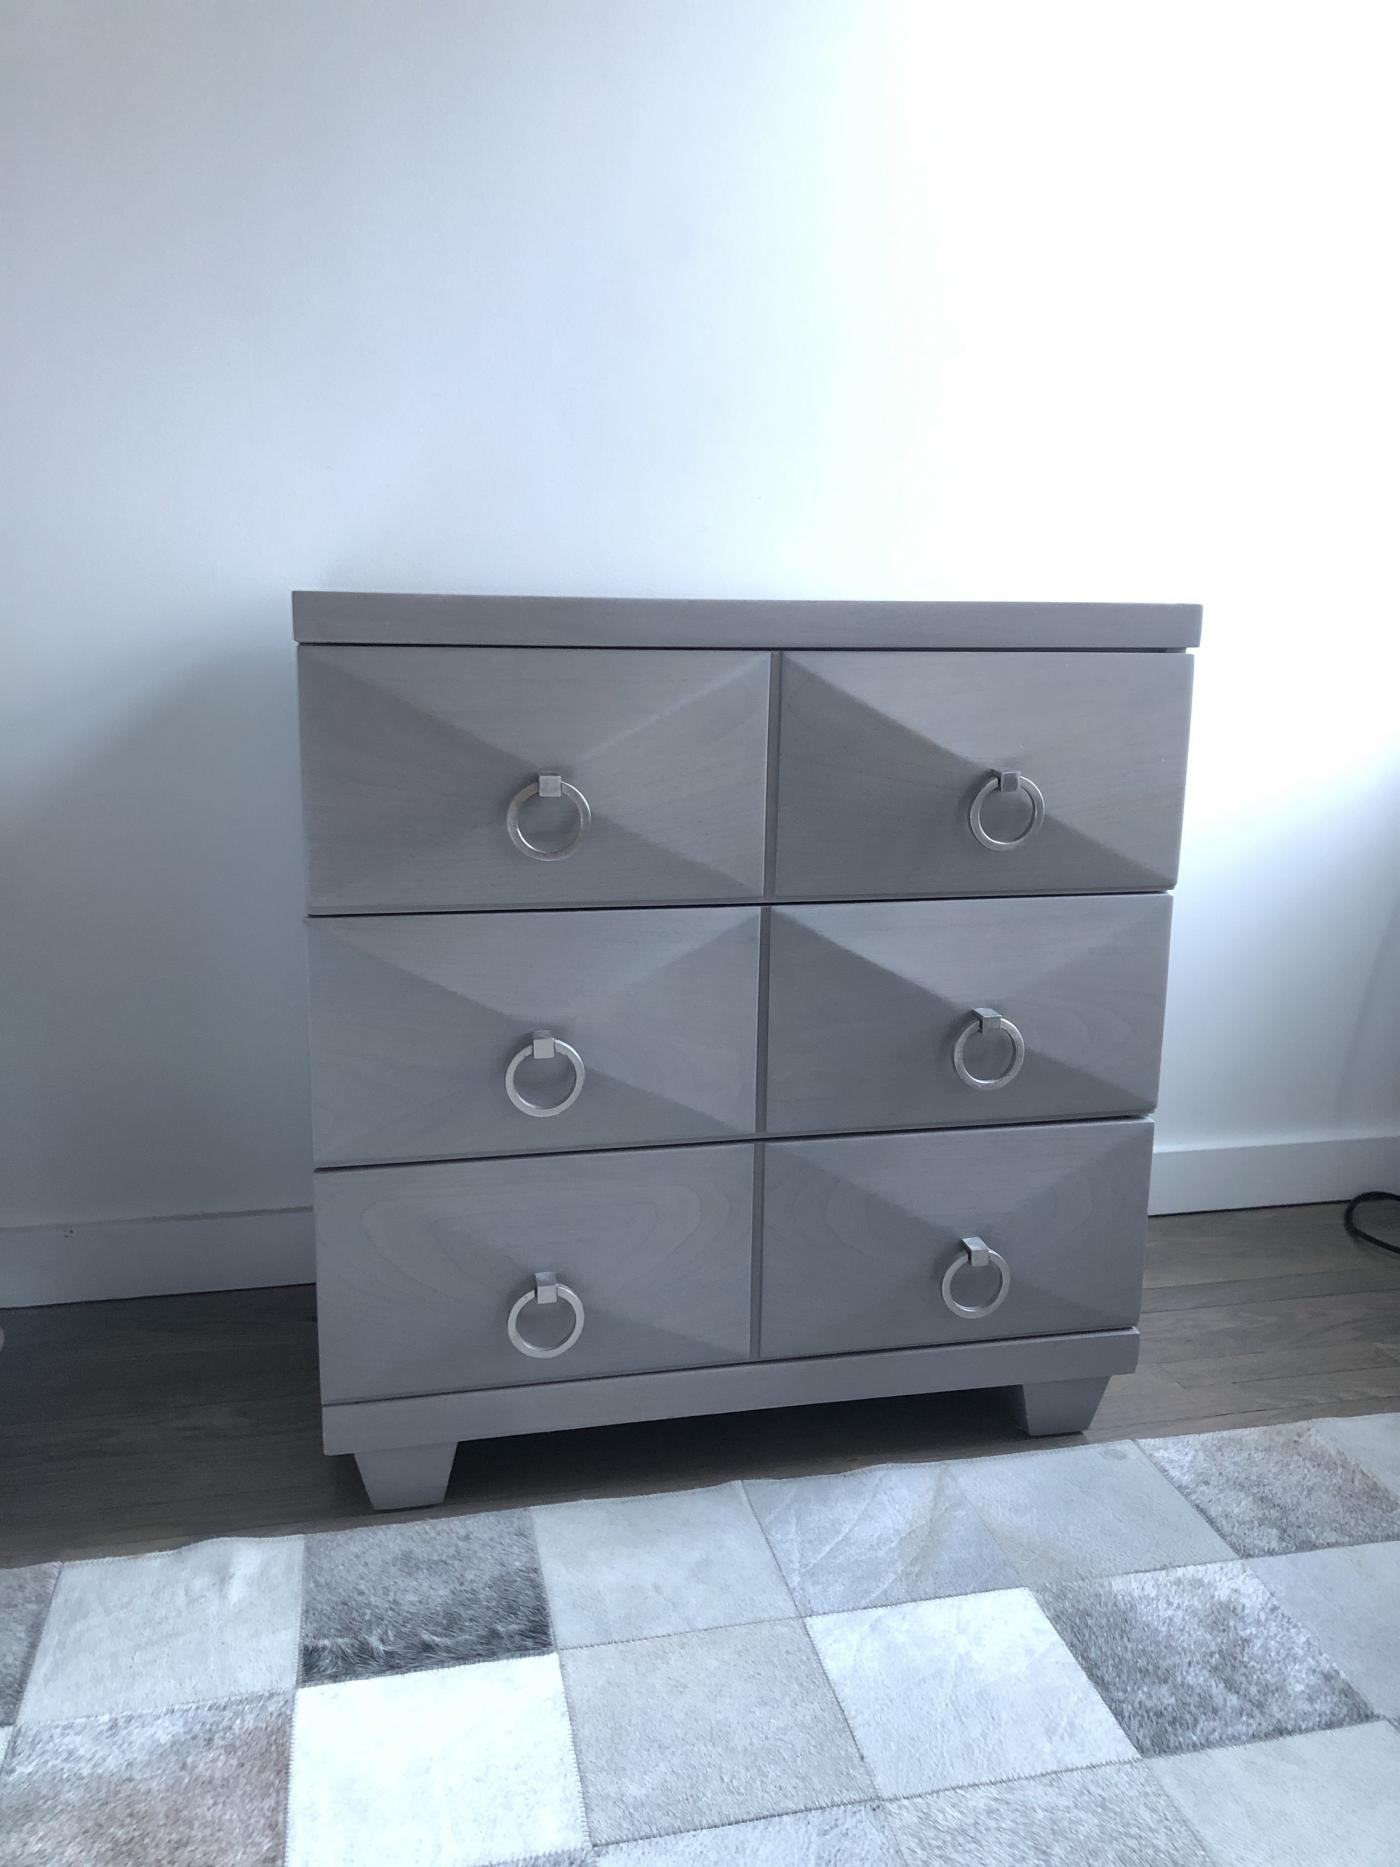 Pair of Bedside Mid Century Chest of drawers.